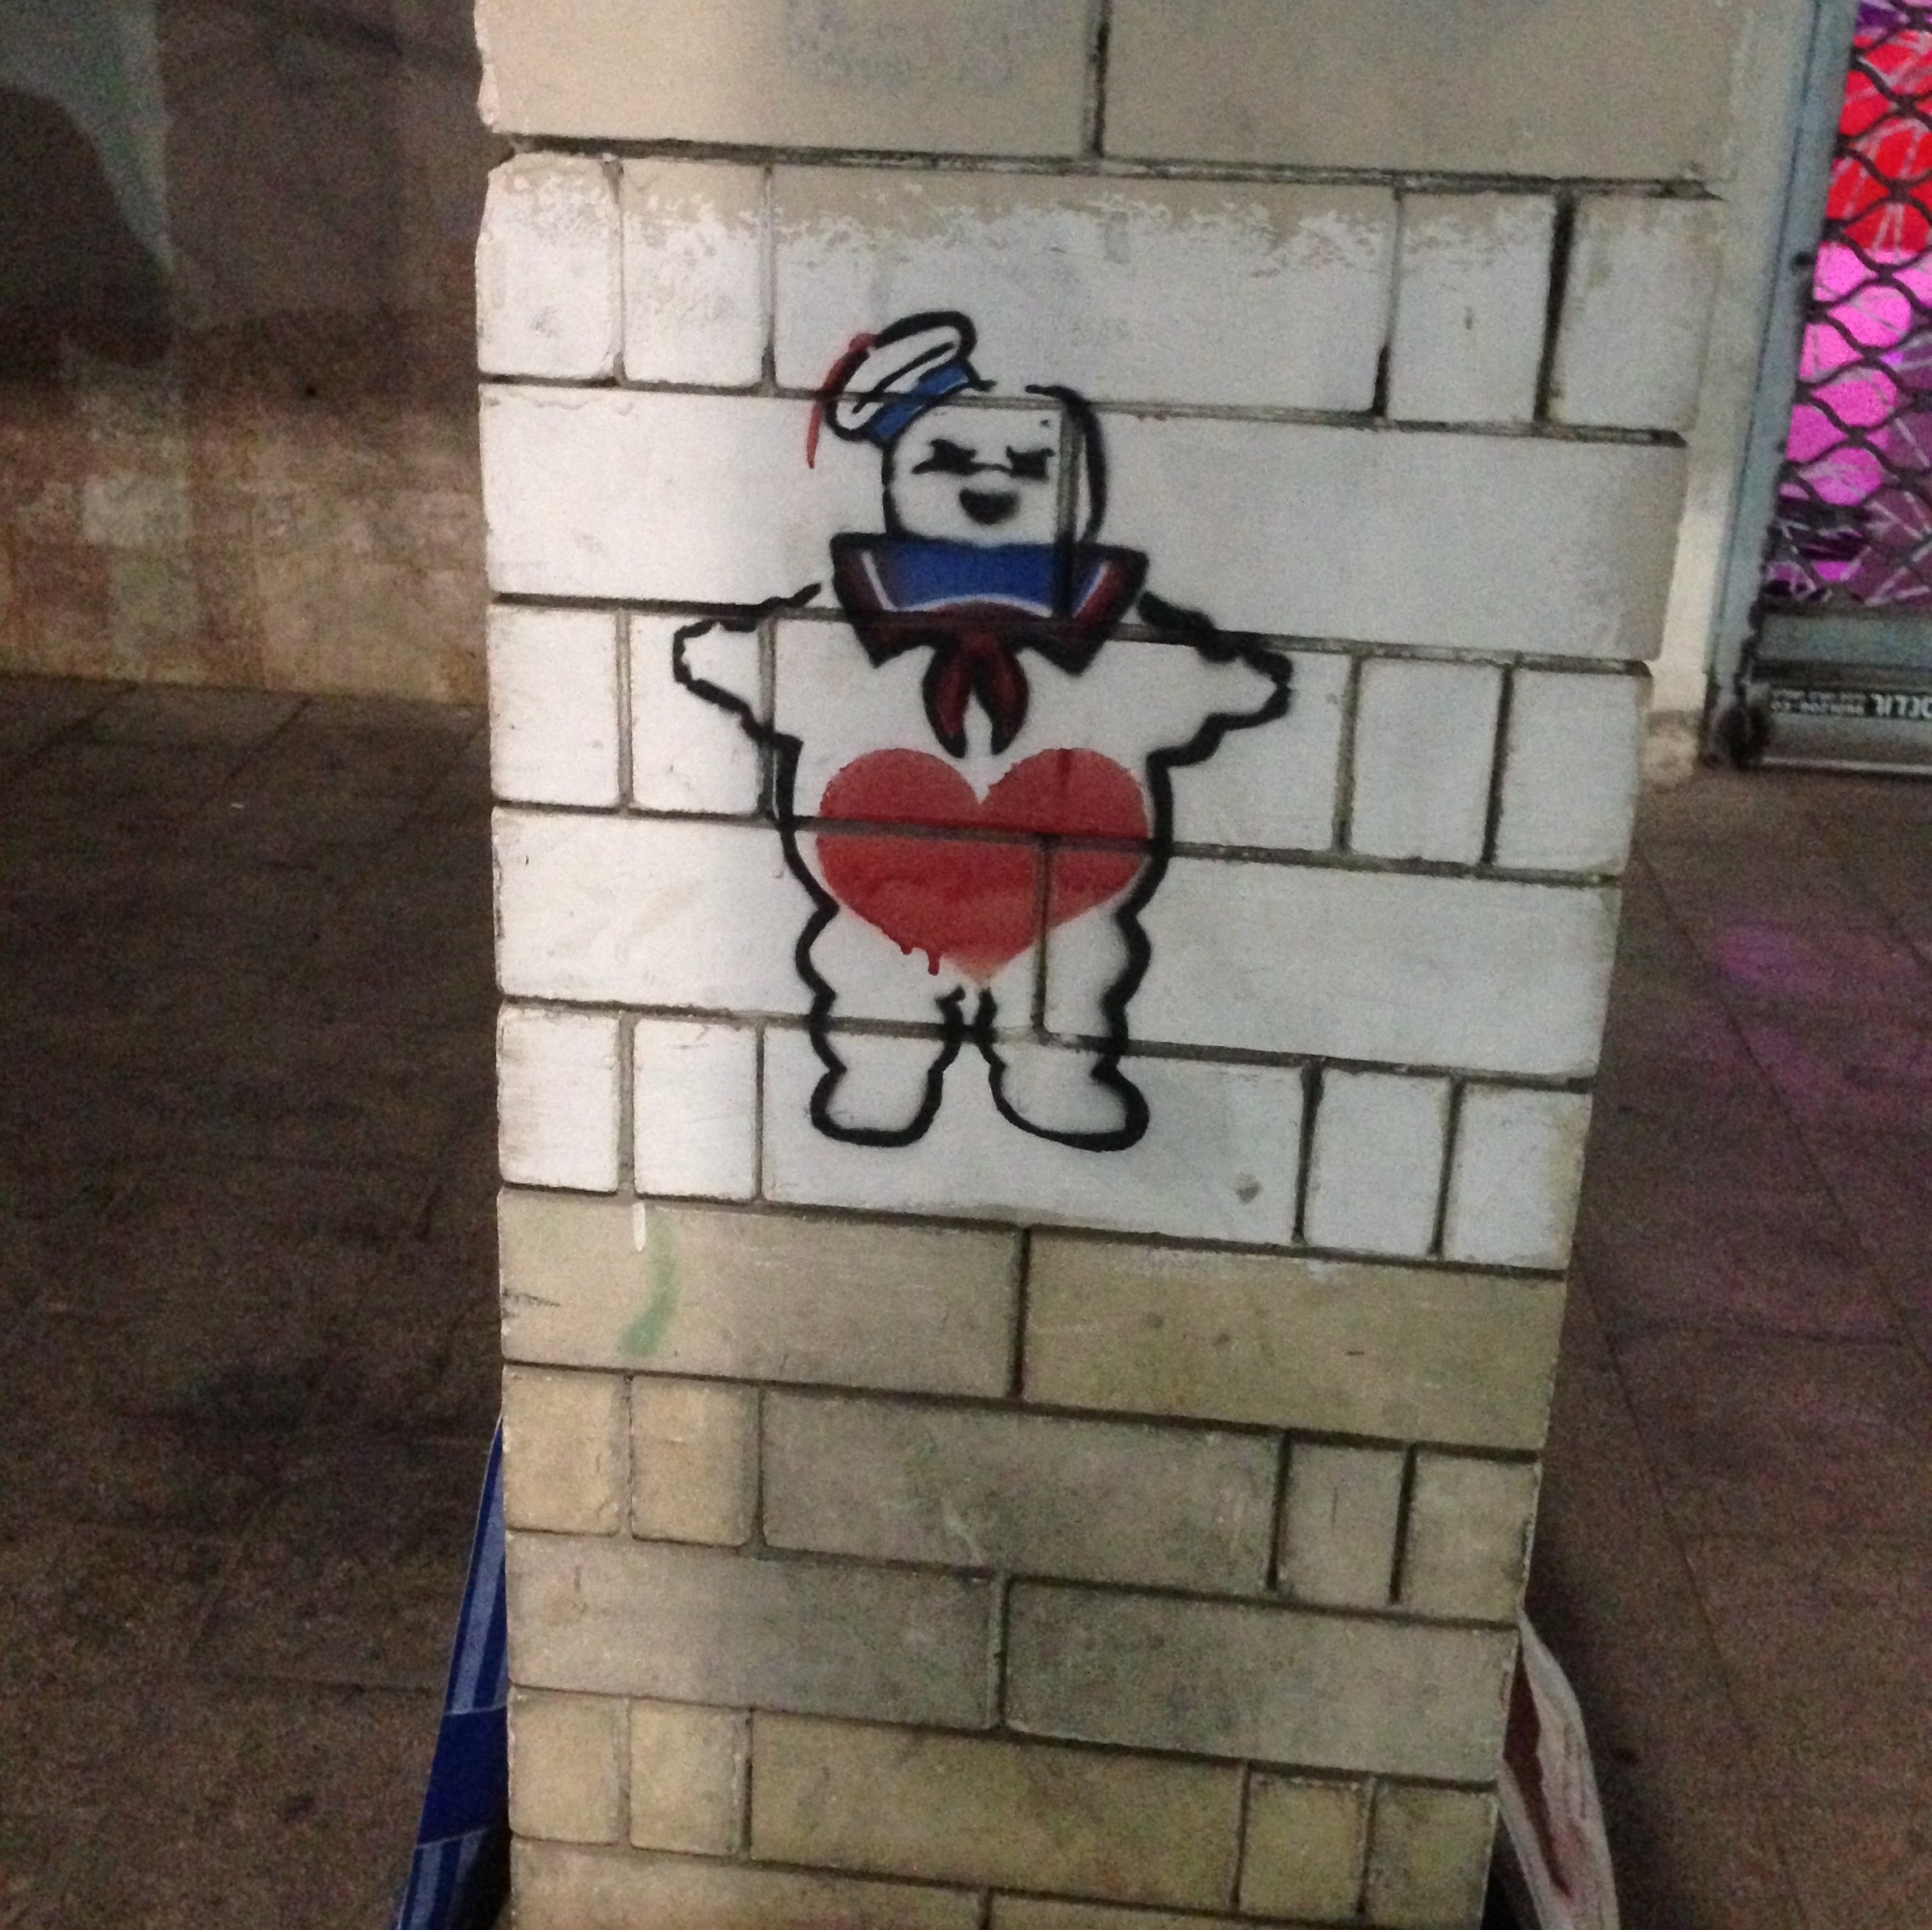 A Staypuff work on the streets of Tel Aviv.